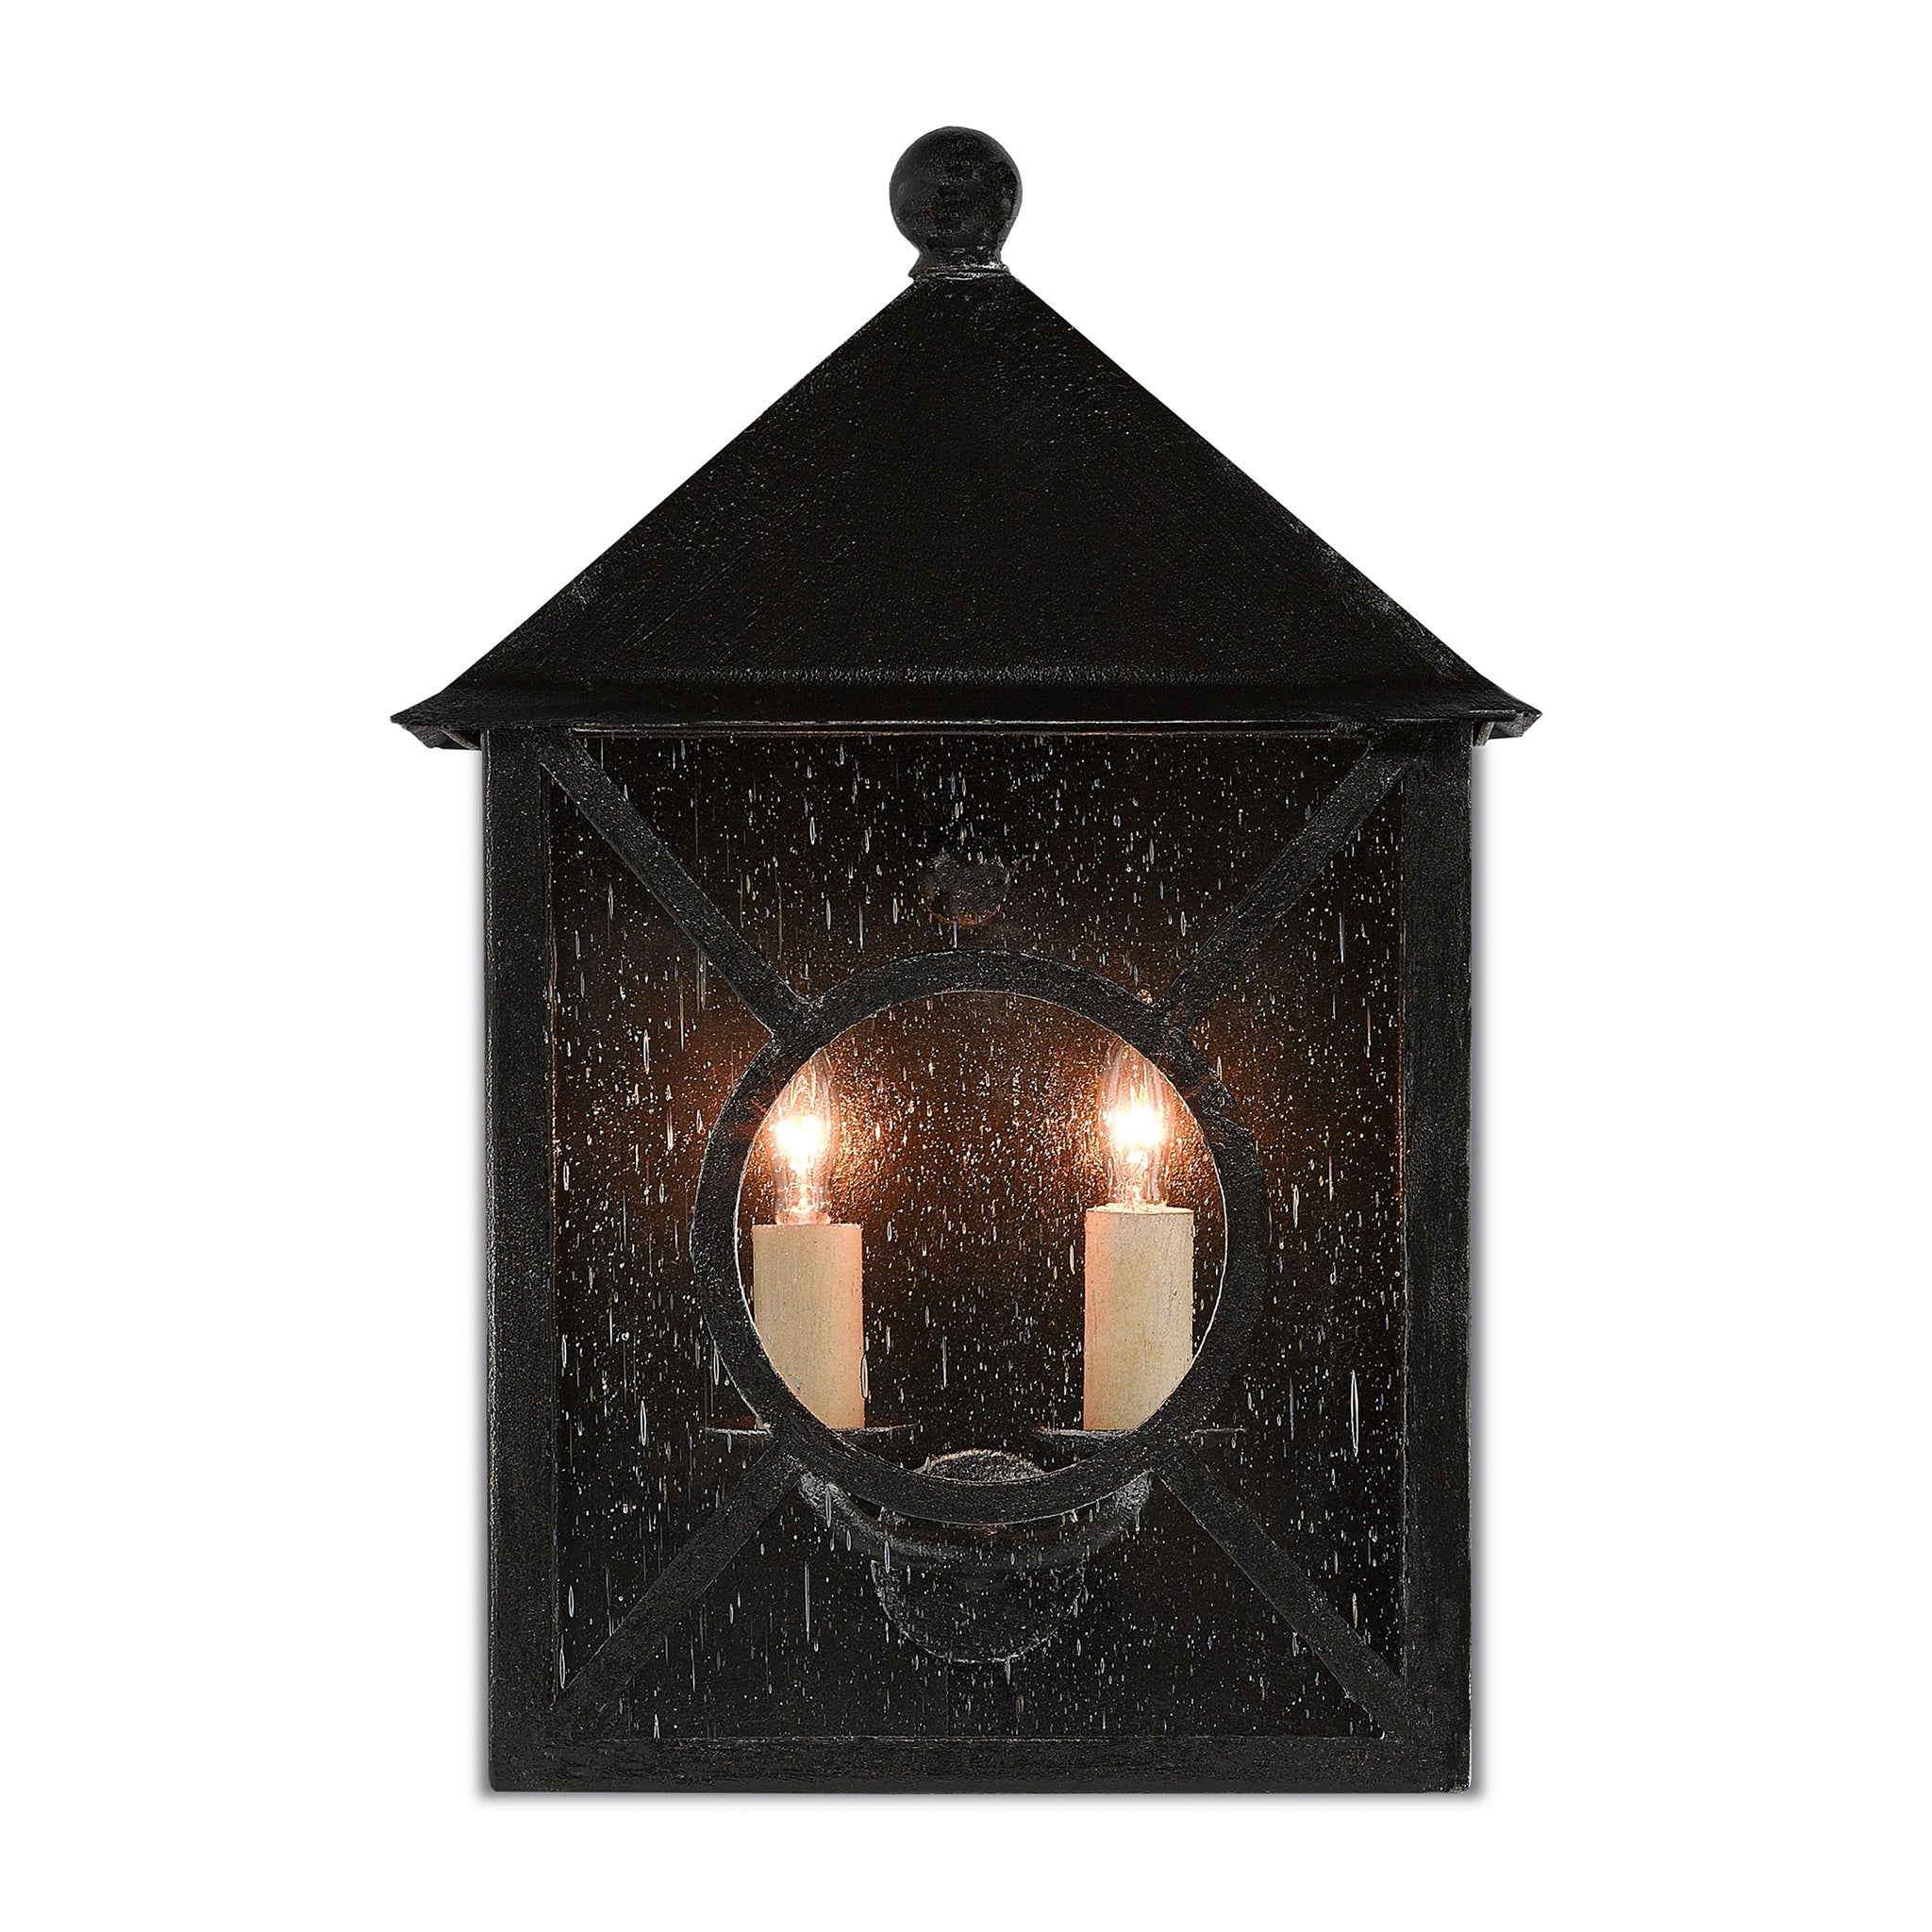 Twelfth Street Outdoor Sconce